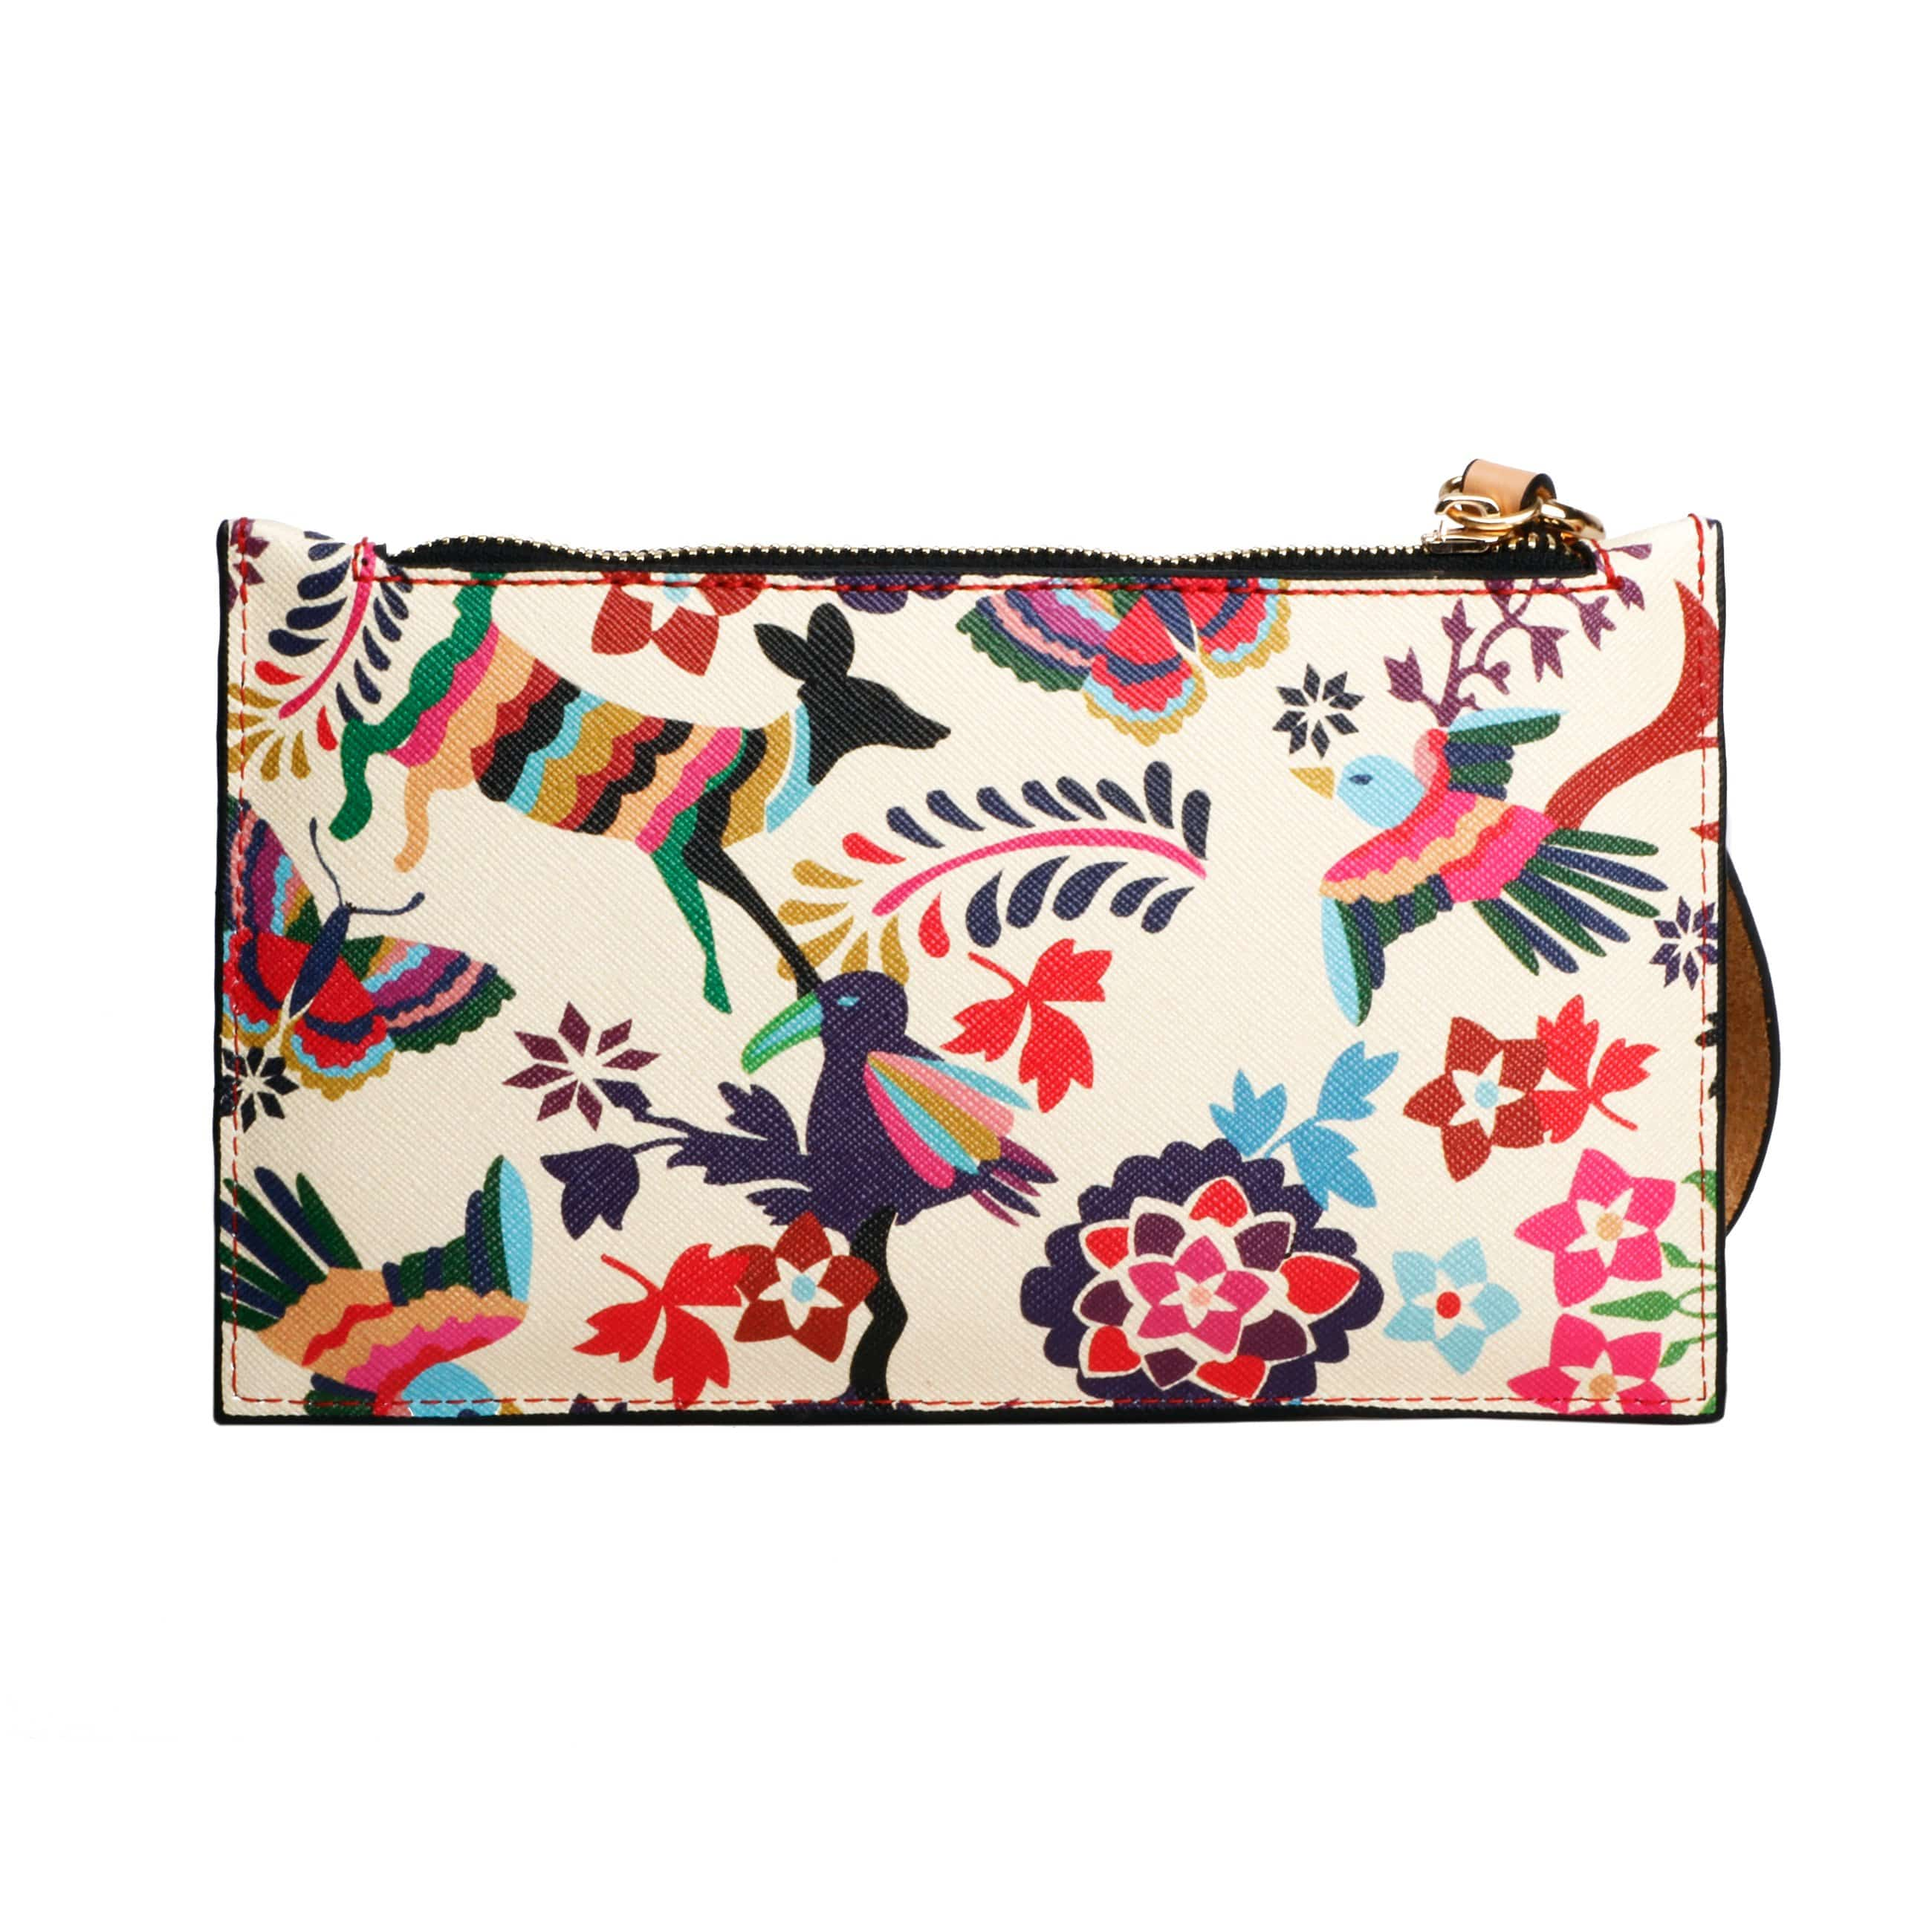 Otomí Mini Clutch